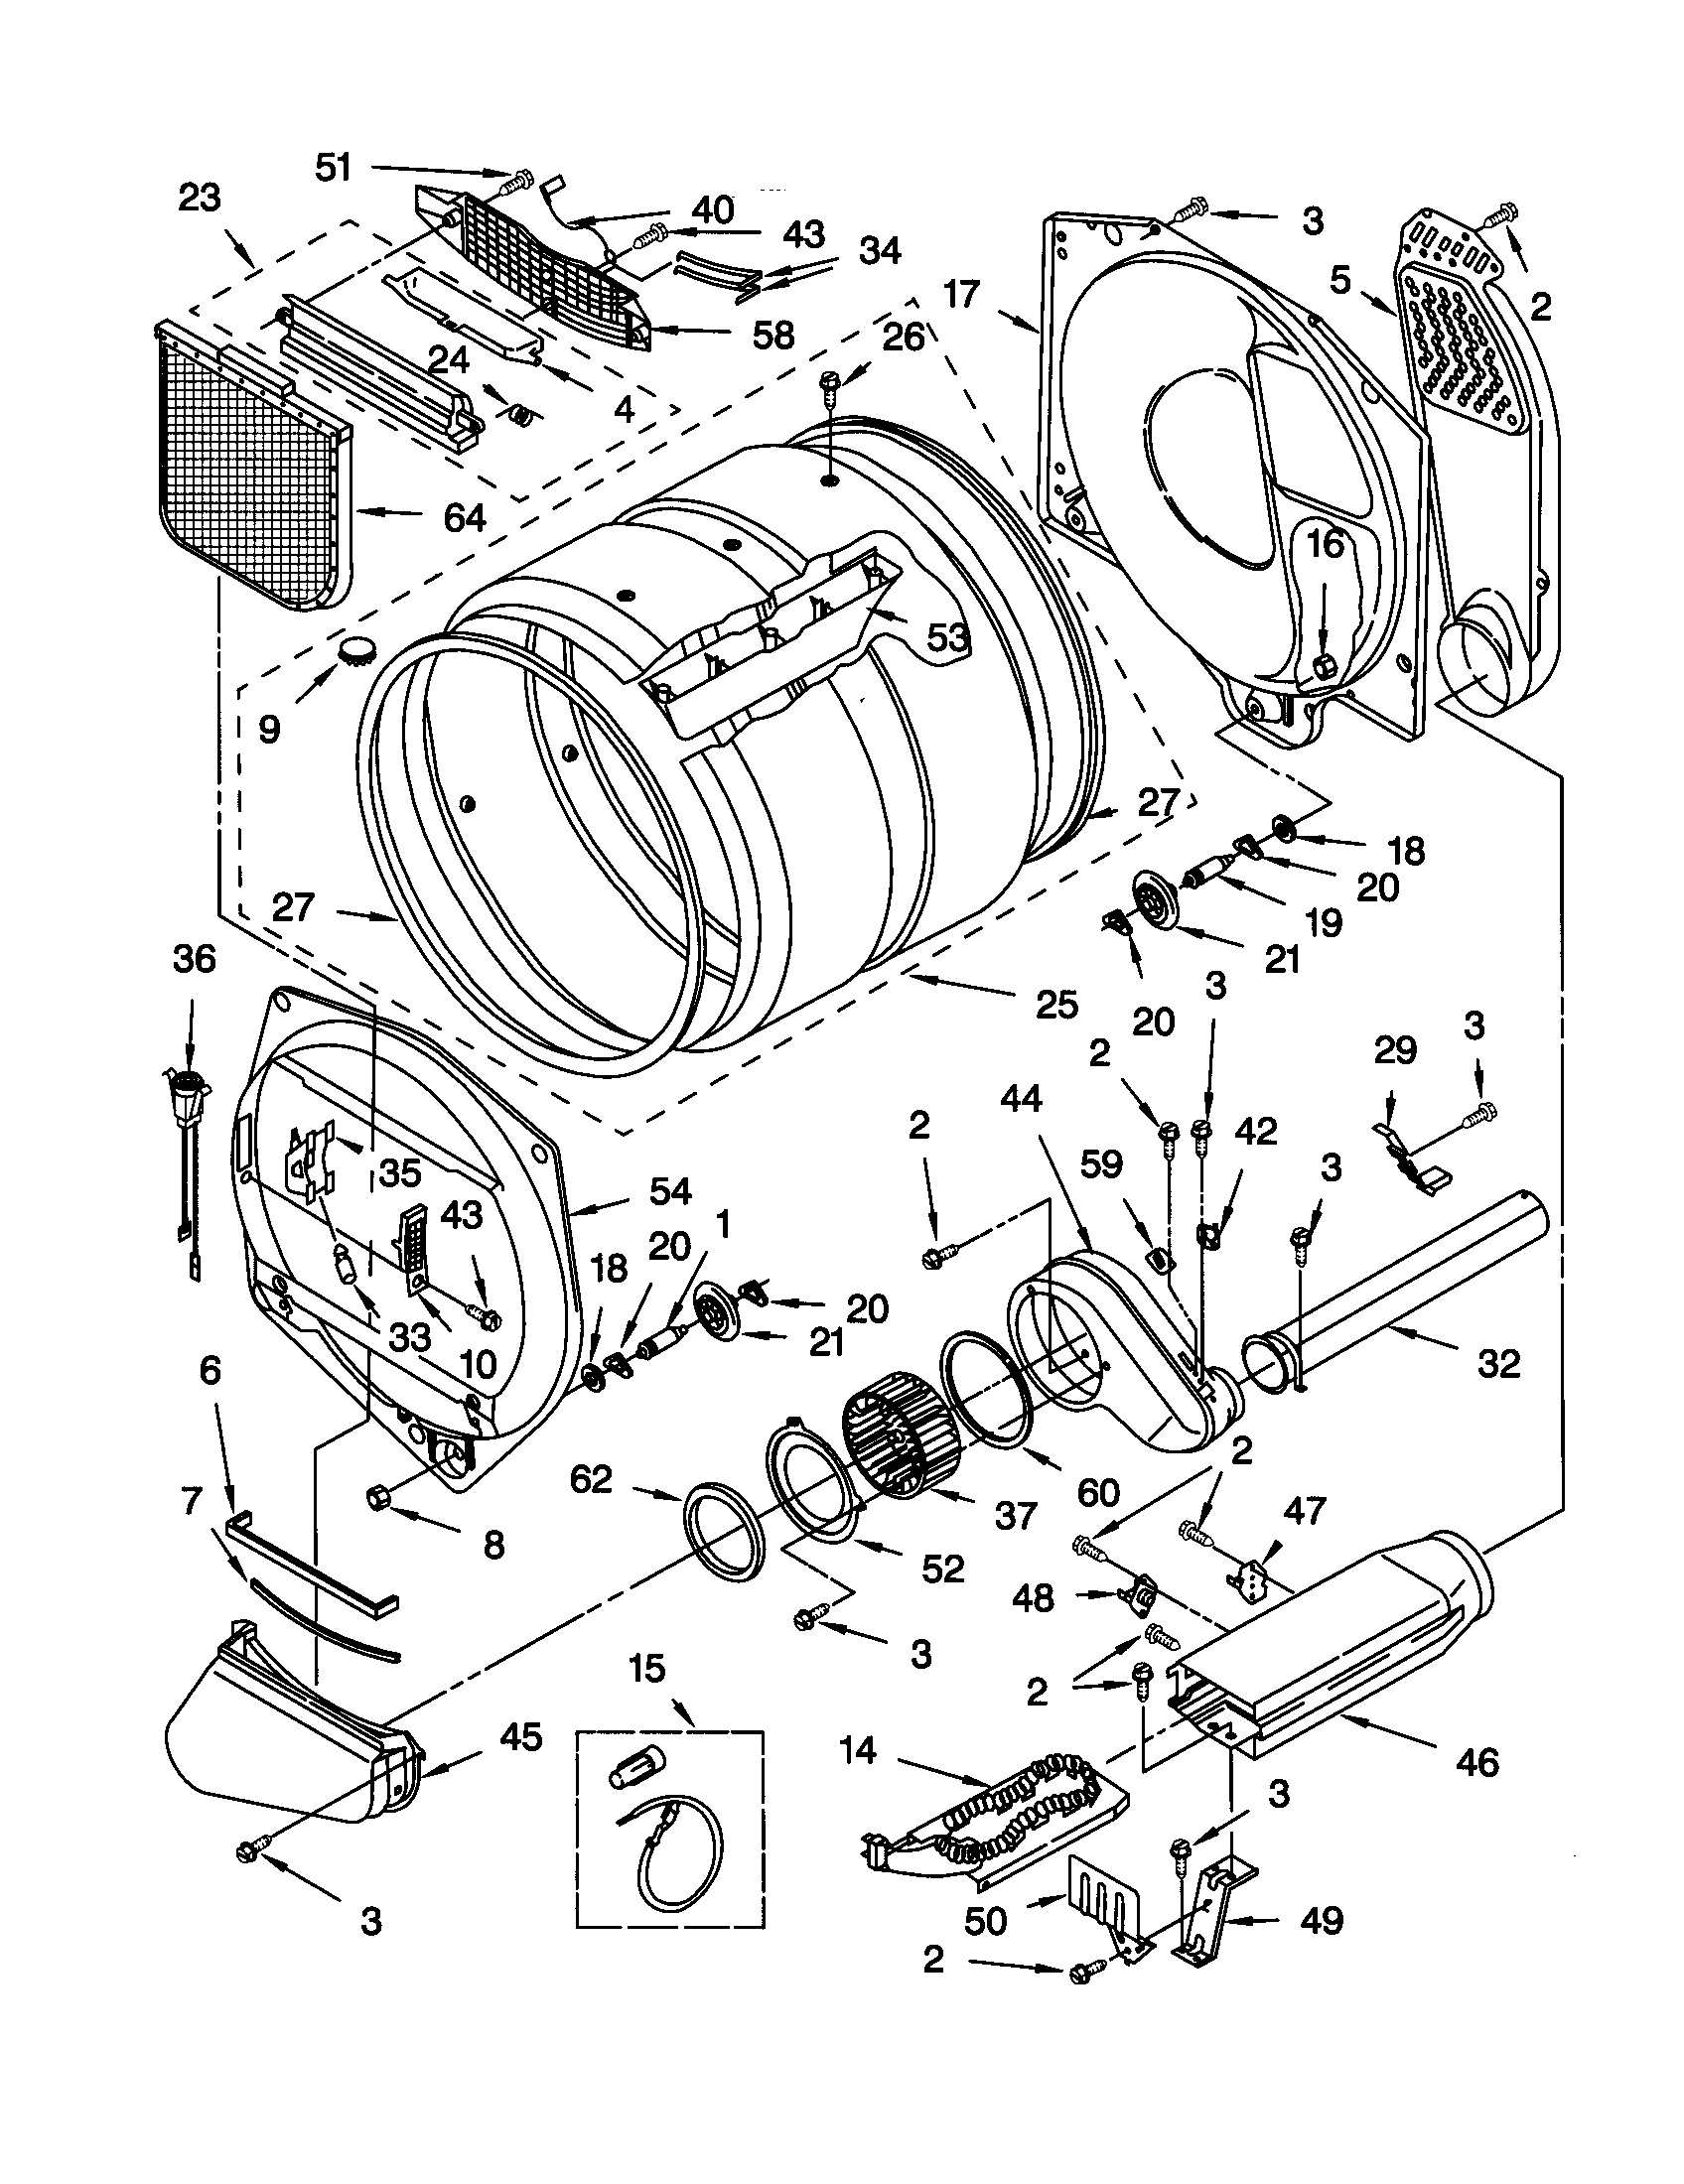 kenmore 90 series dryer parts diagram wiring 110cc chinese atv model 11060902990 residential genuine